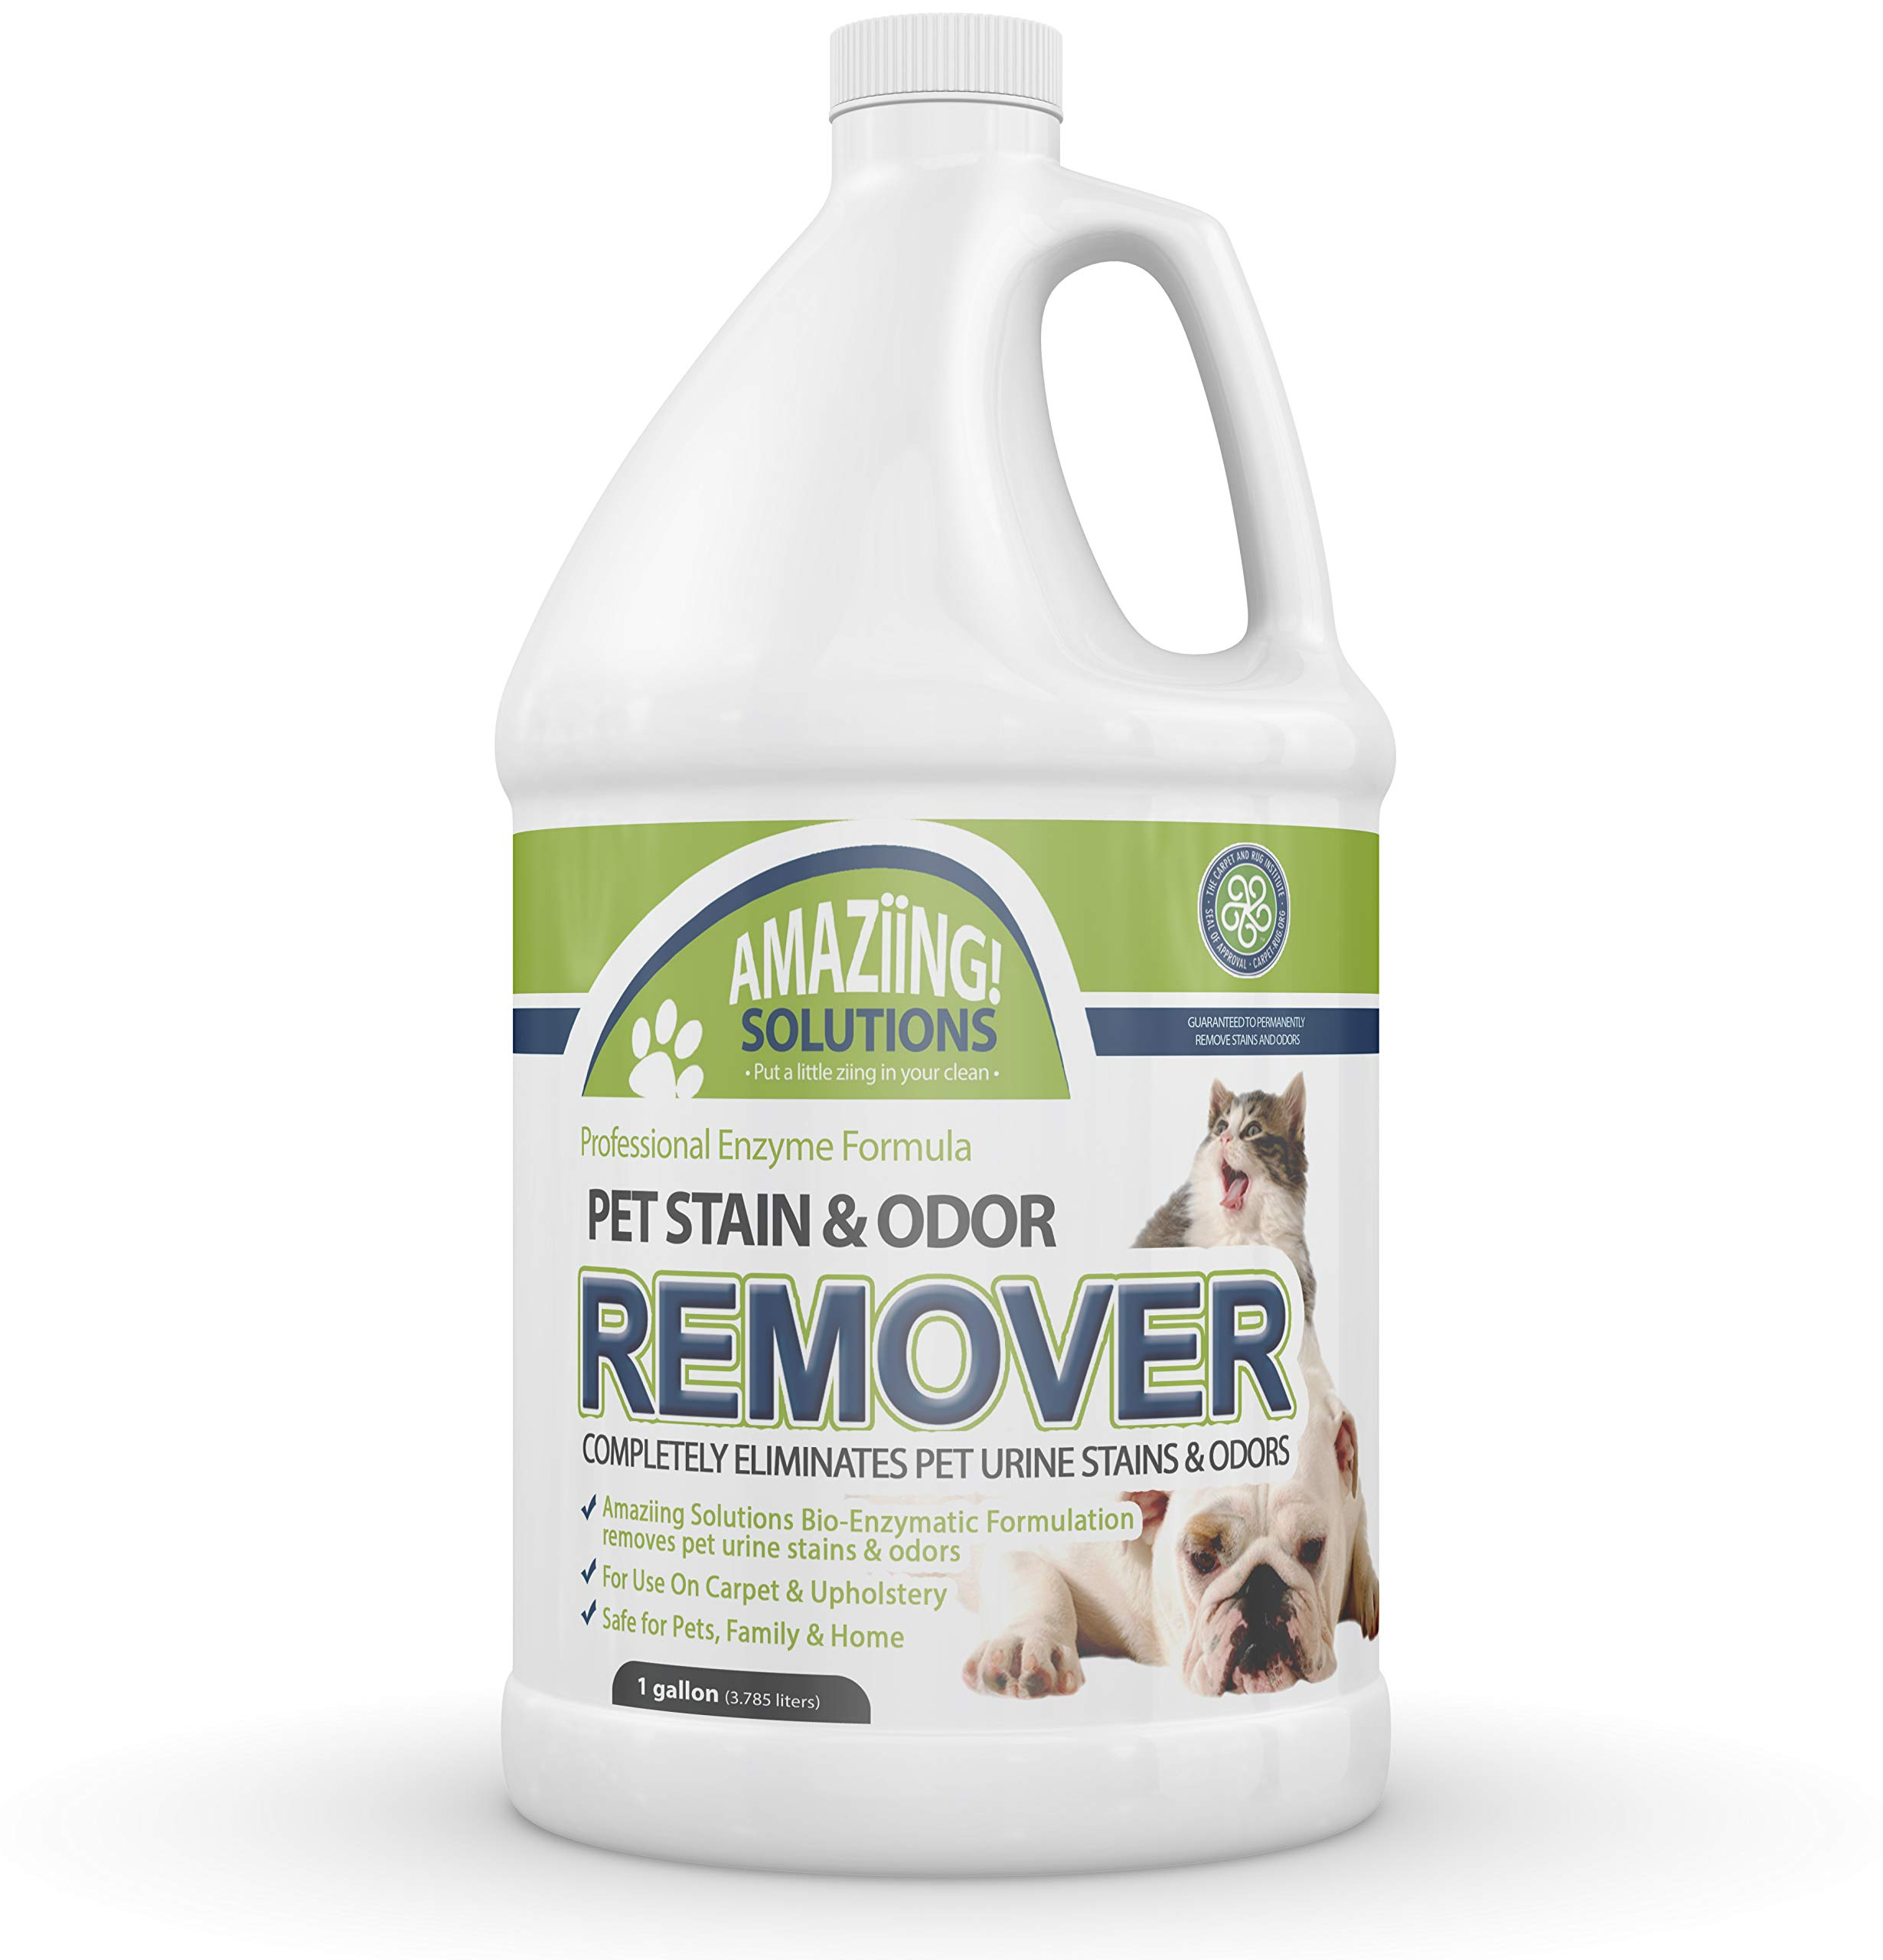 Amaziing Solutions Pet Odor Eliminator and Stain Remover Carpet Cleaner for Dog Urine and Cat Pee, Professional Strength Enzymatic Solution, Natural Enzymes for Carpet and Hardwood Floors (Gallon) by Amaziing Solutions